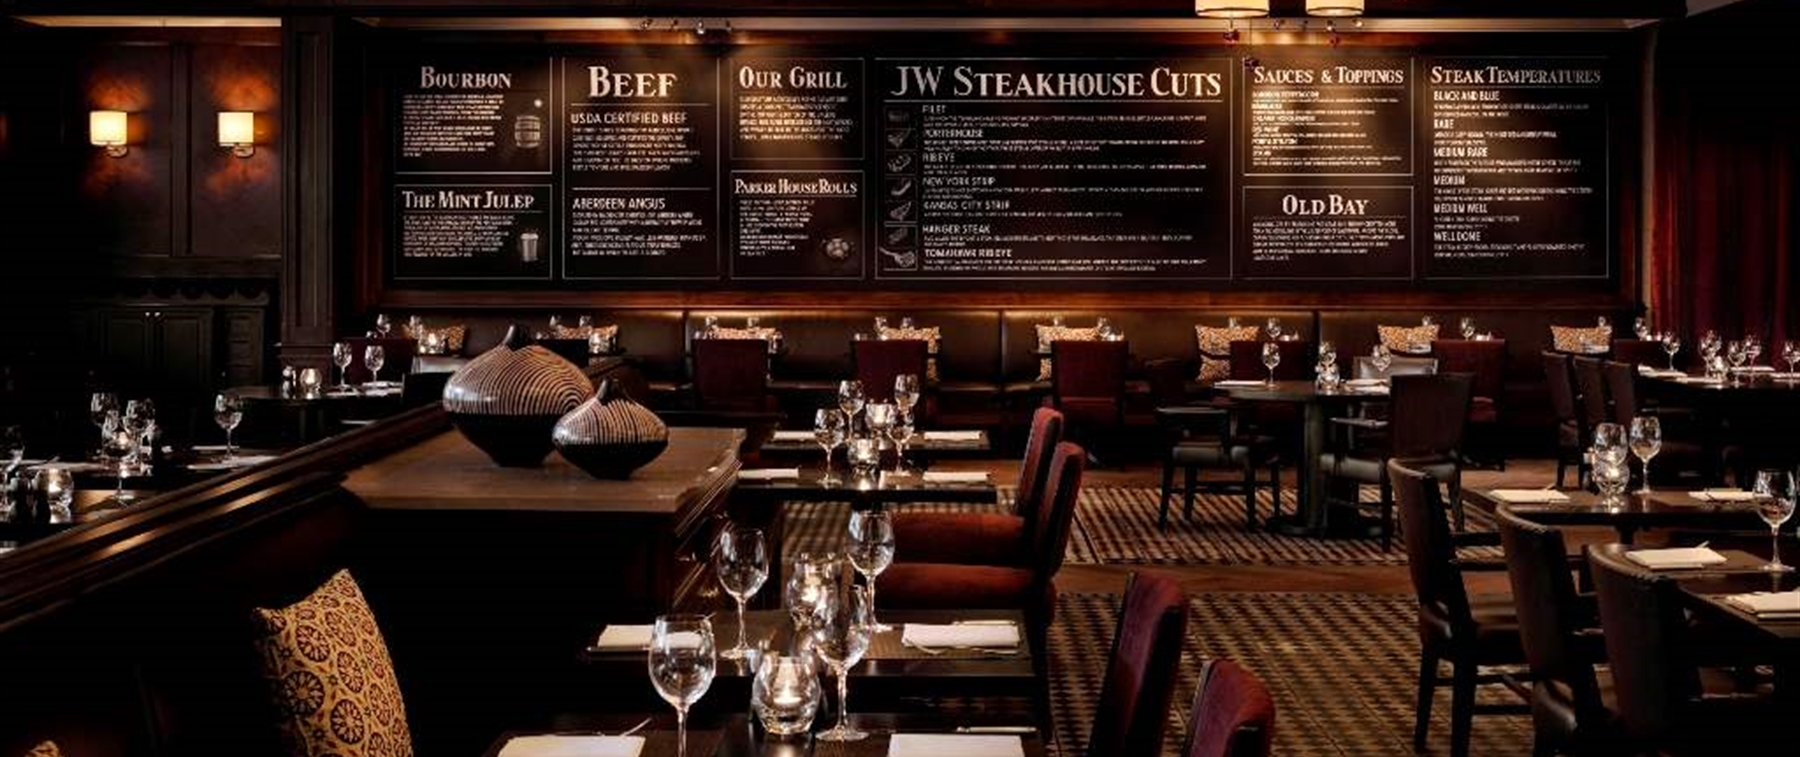 JW Steakhouse Restaurant